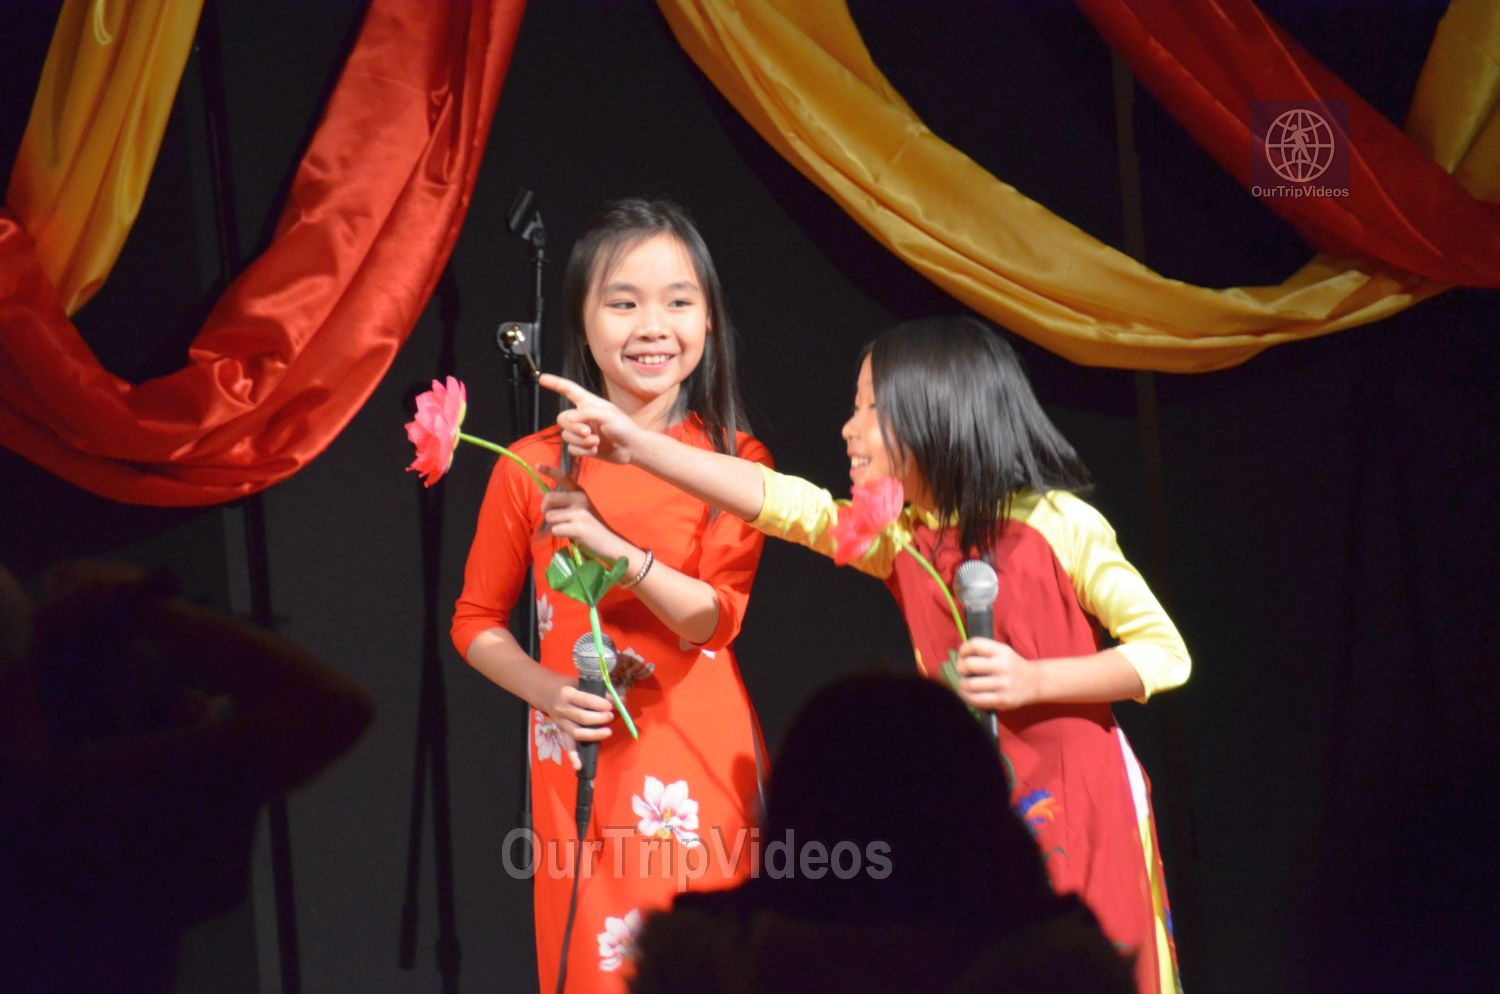 Chinese Lunar New Year Celebration, Milpitas, CA, USA - Picture 16 of 25